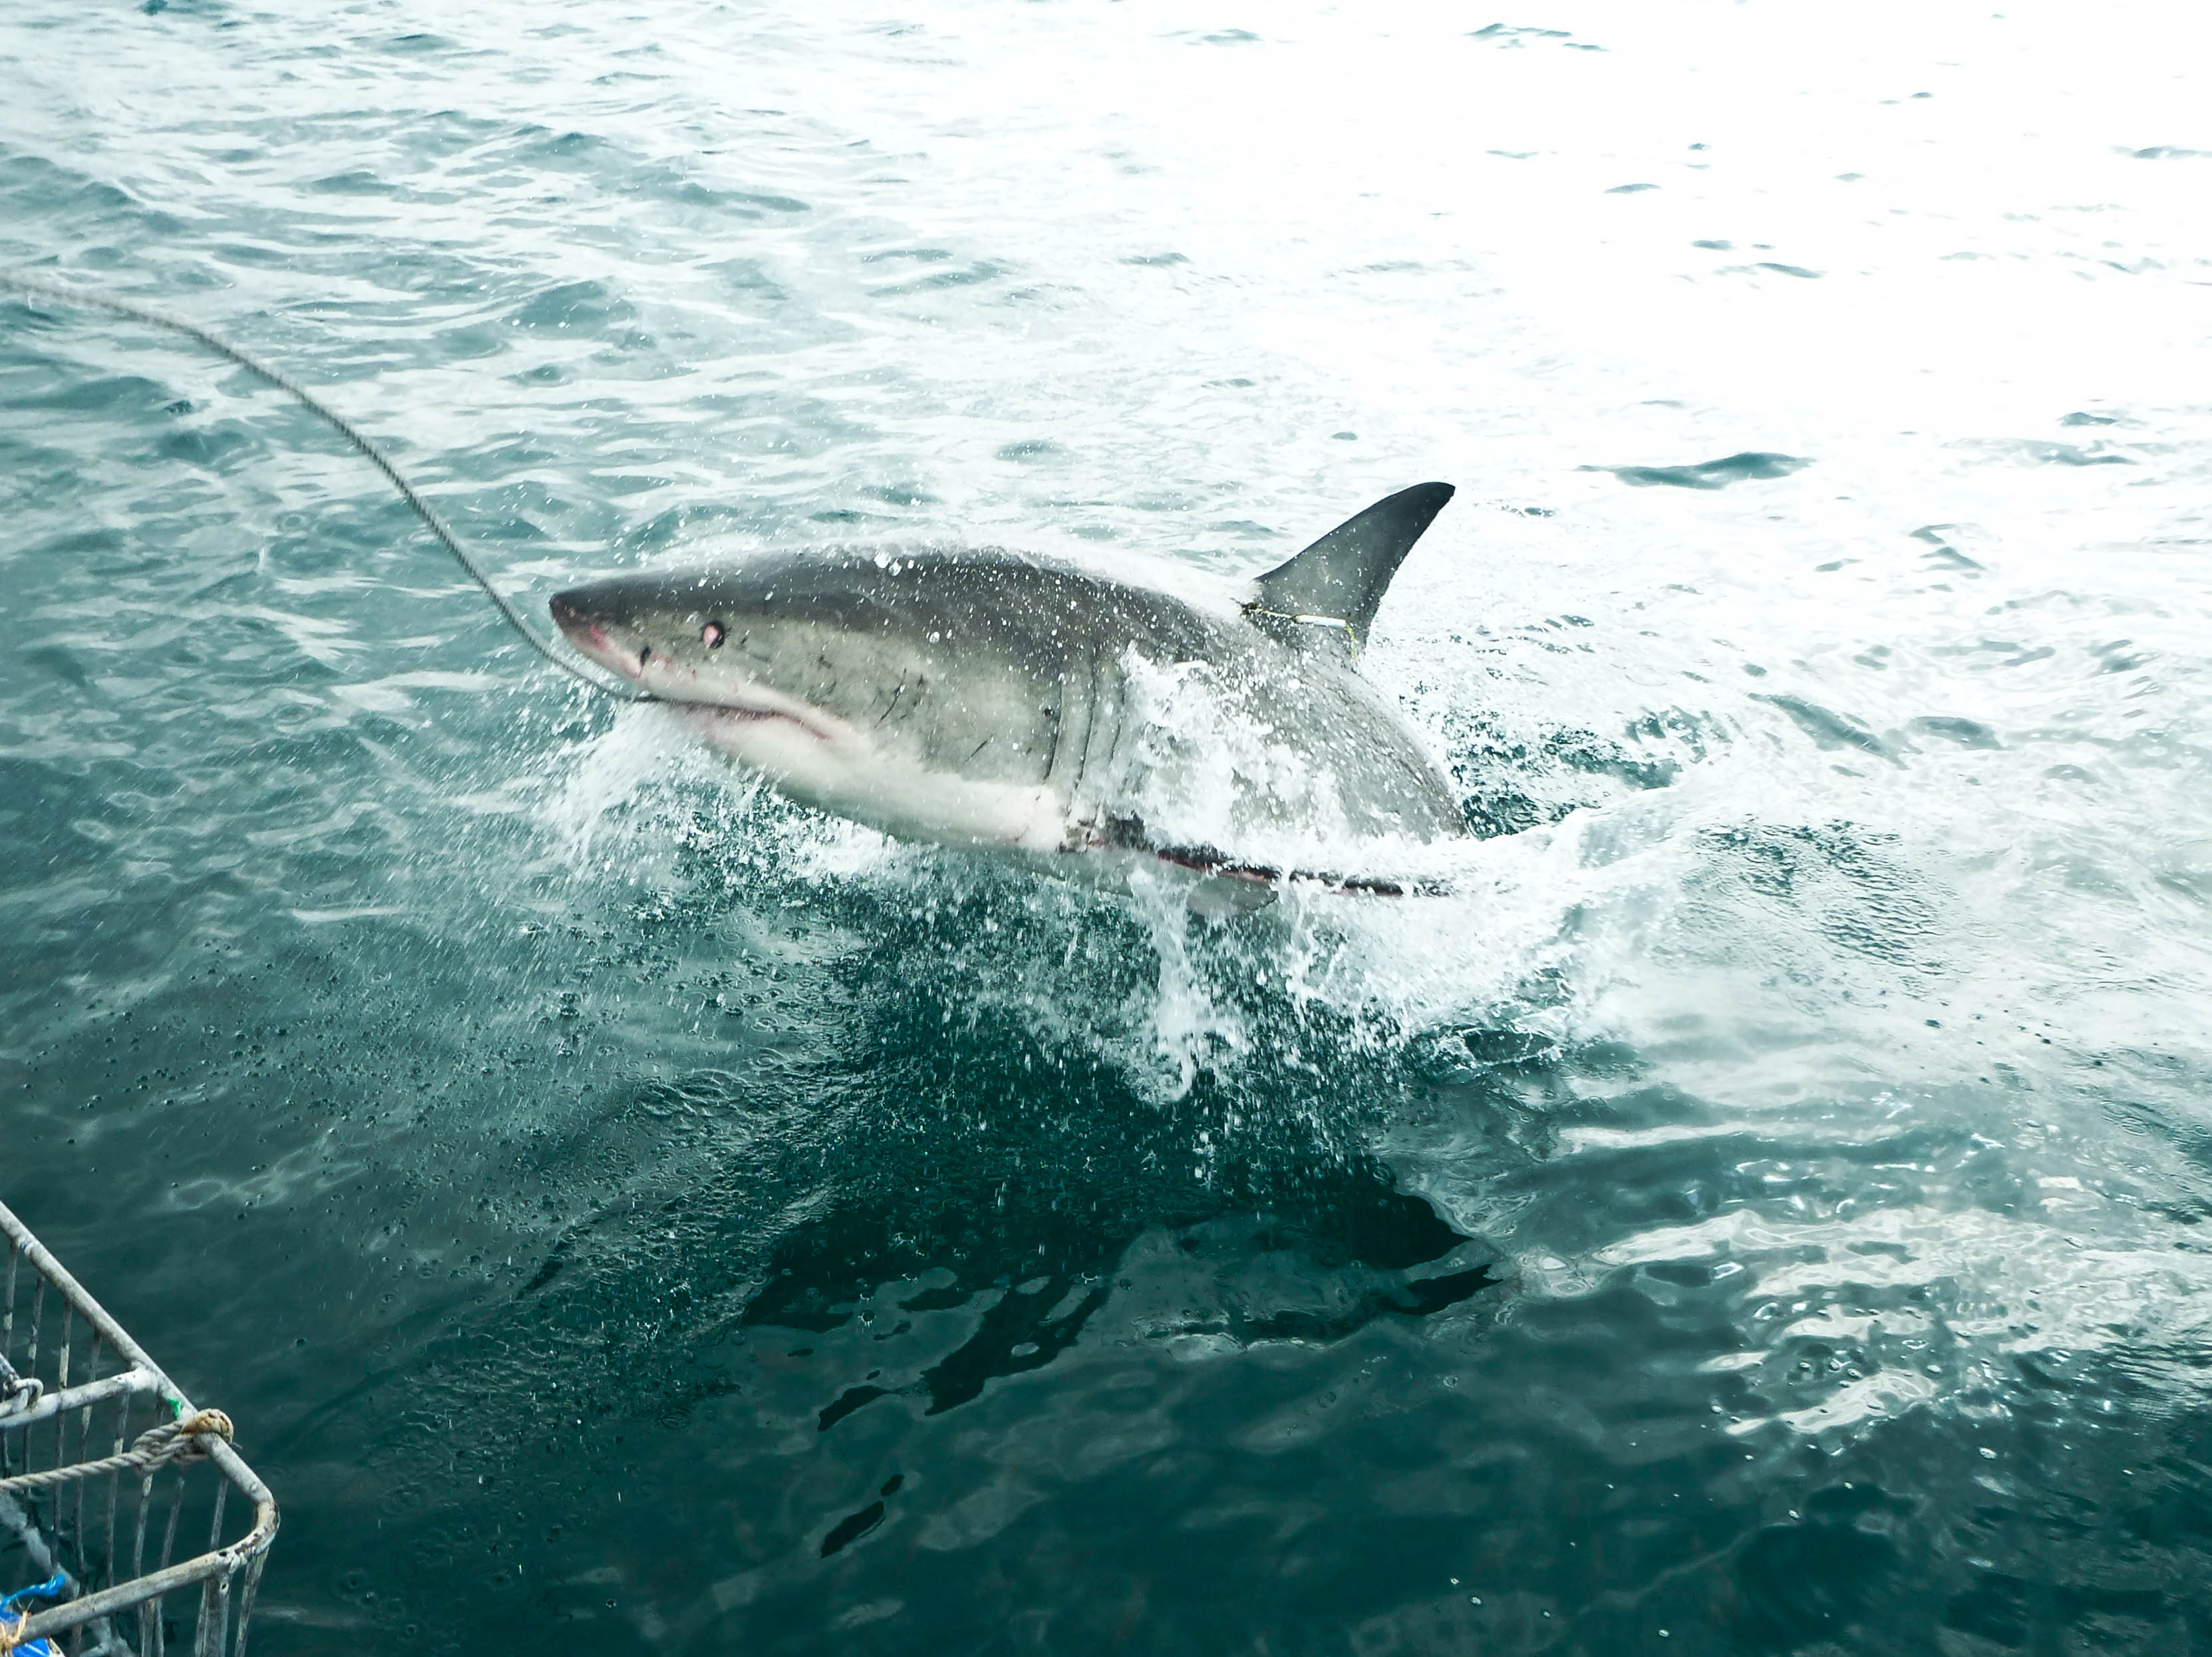 A 3.5 meter white shark breaches the surface and takes the tuna bait during a cage diving trip with White Shark Africa in Mosselbaai, South Africa.